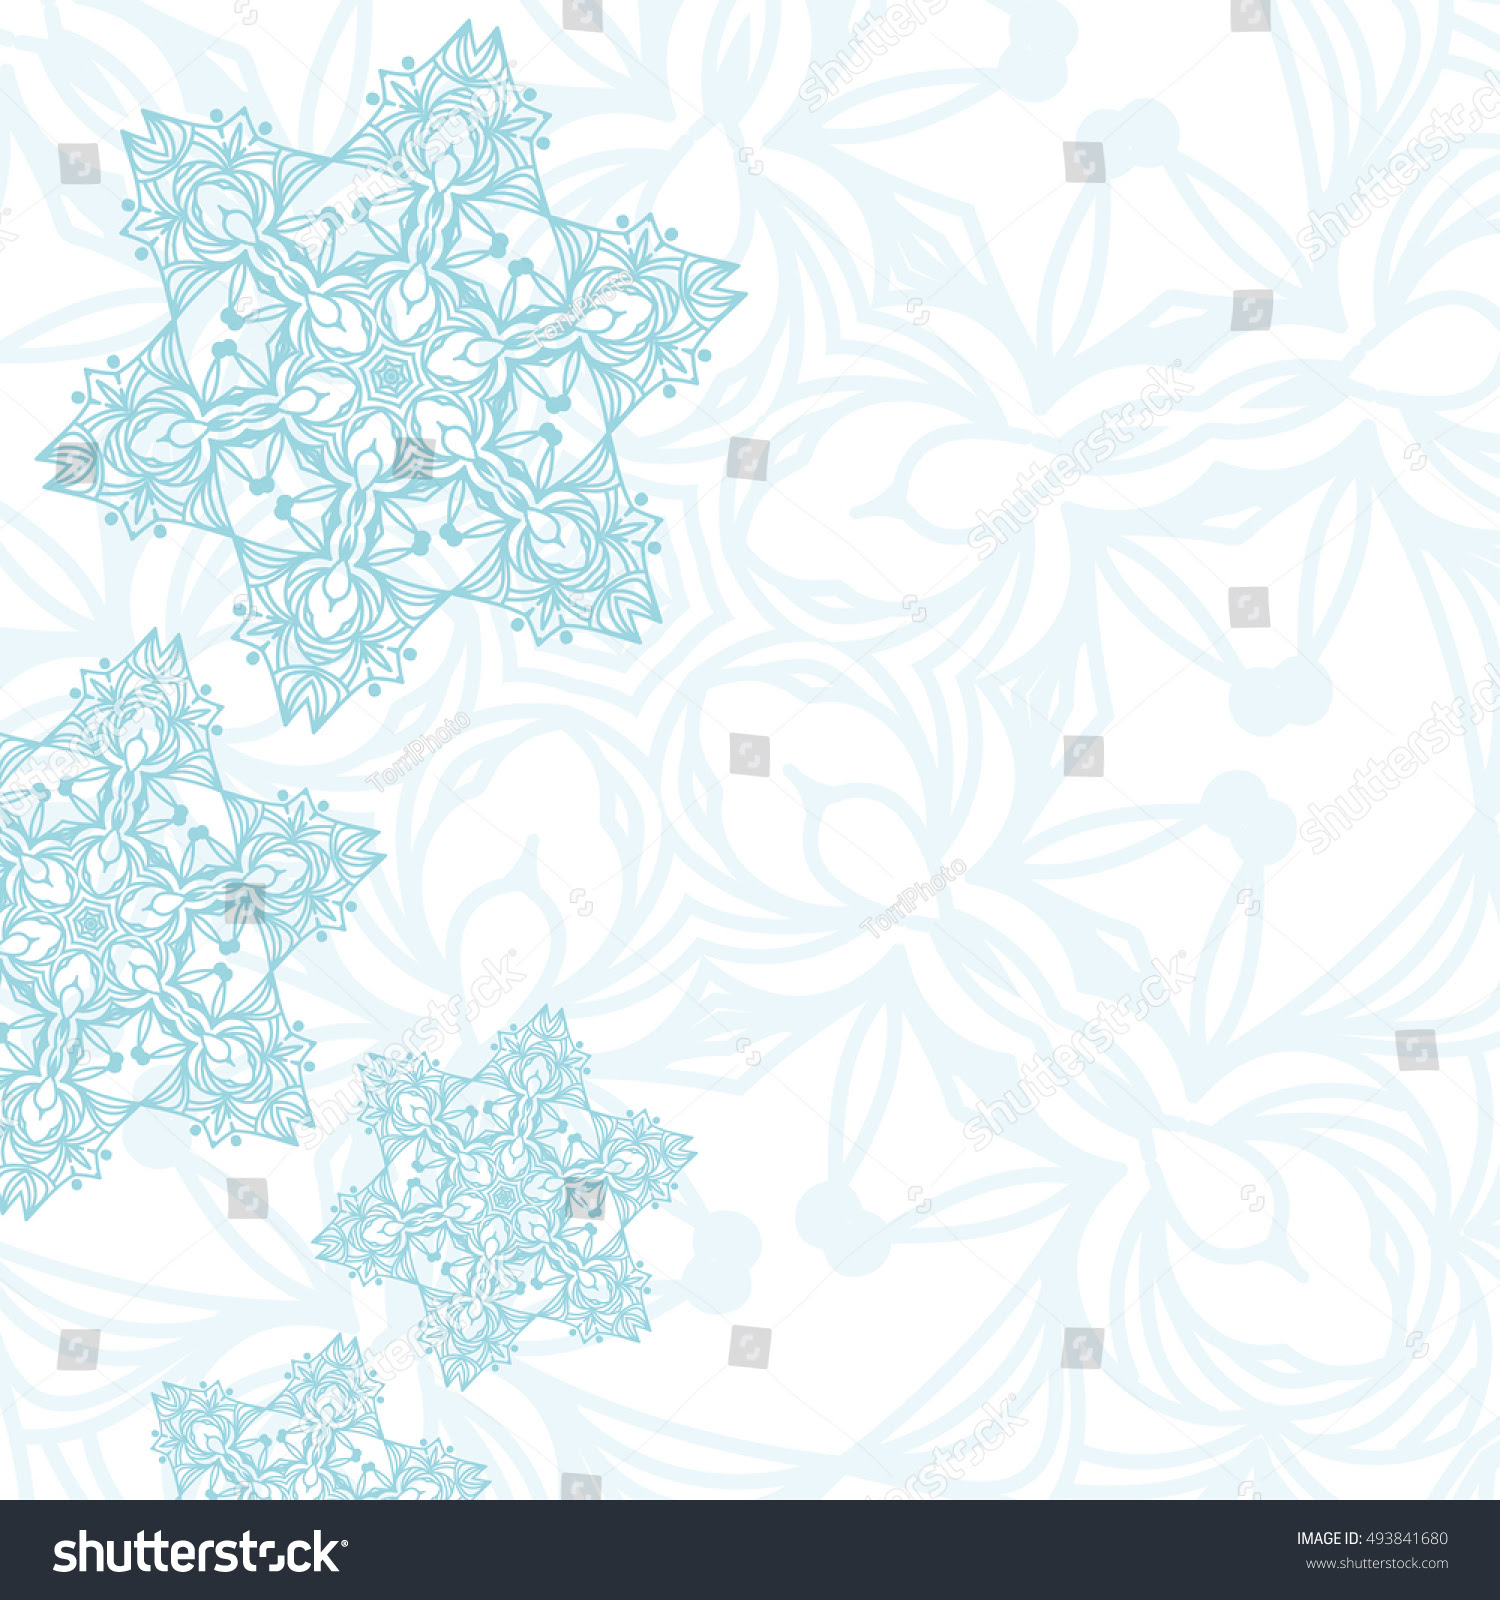 http://www.shutterstock.com/pic-493841680/stock-vector-winter-background-with-abstract-snowflakes-for-card-or-invitation-copy-space-vector-illustration-eps8.html